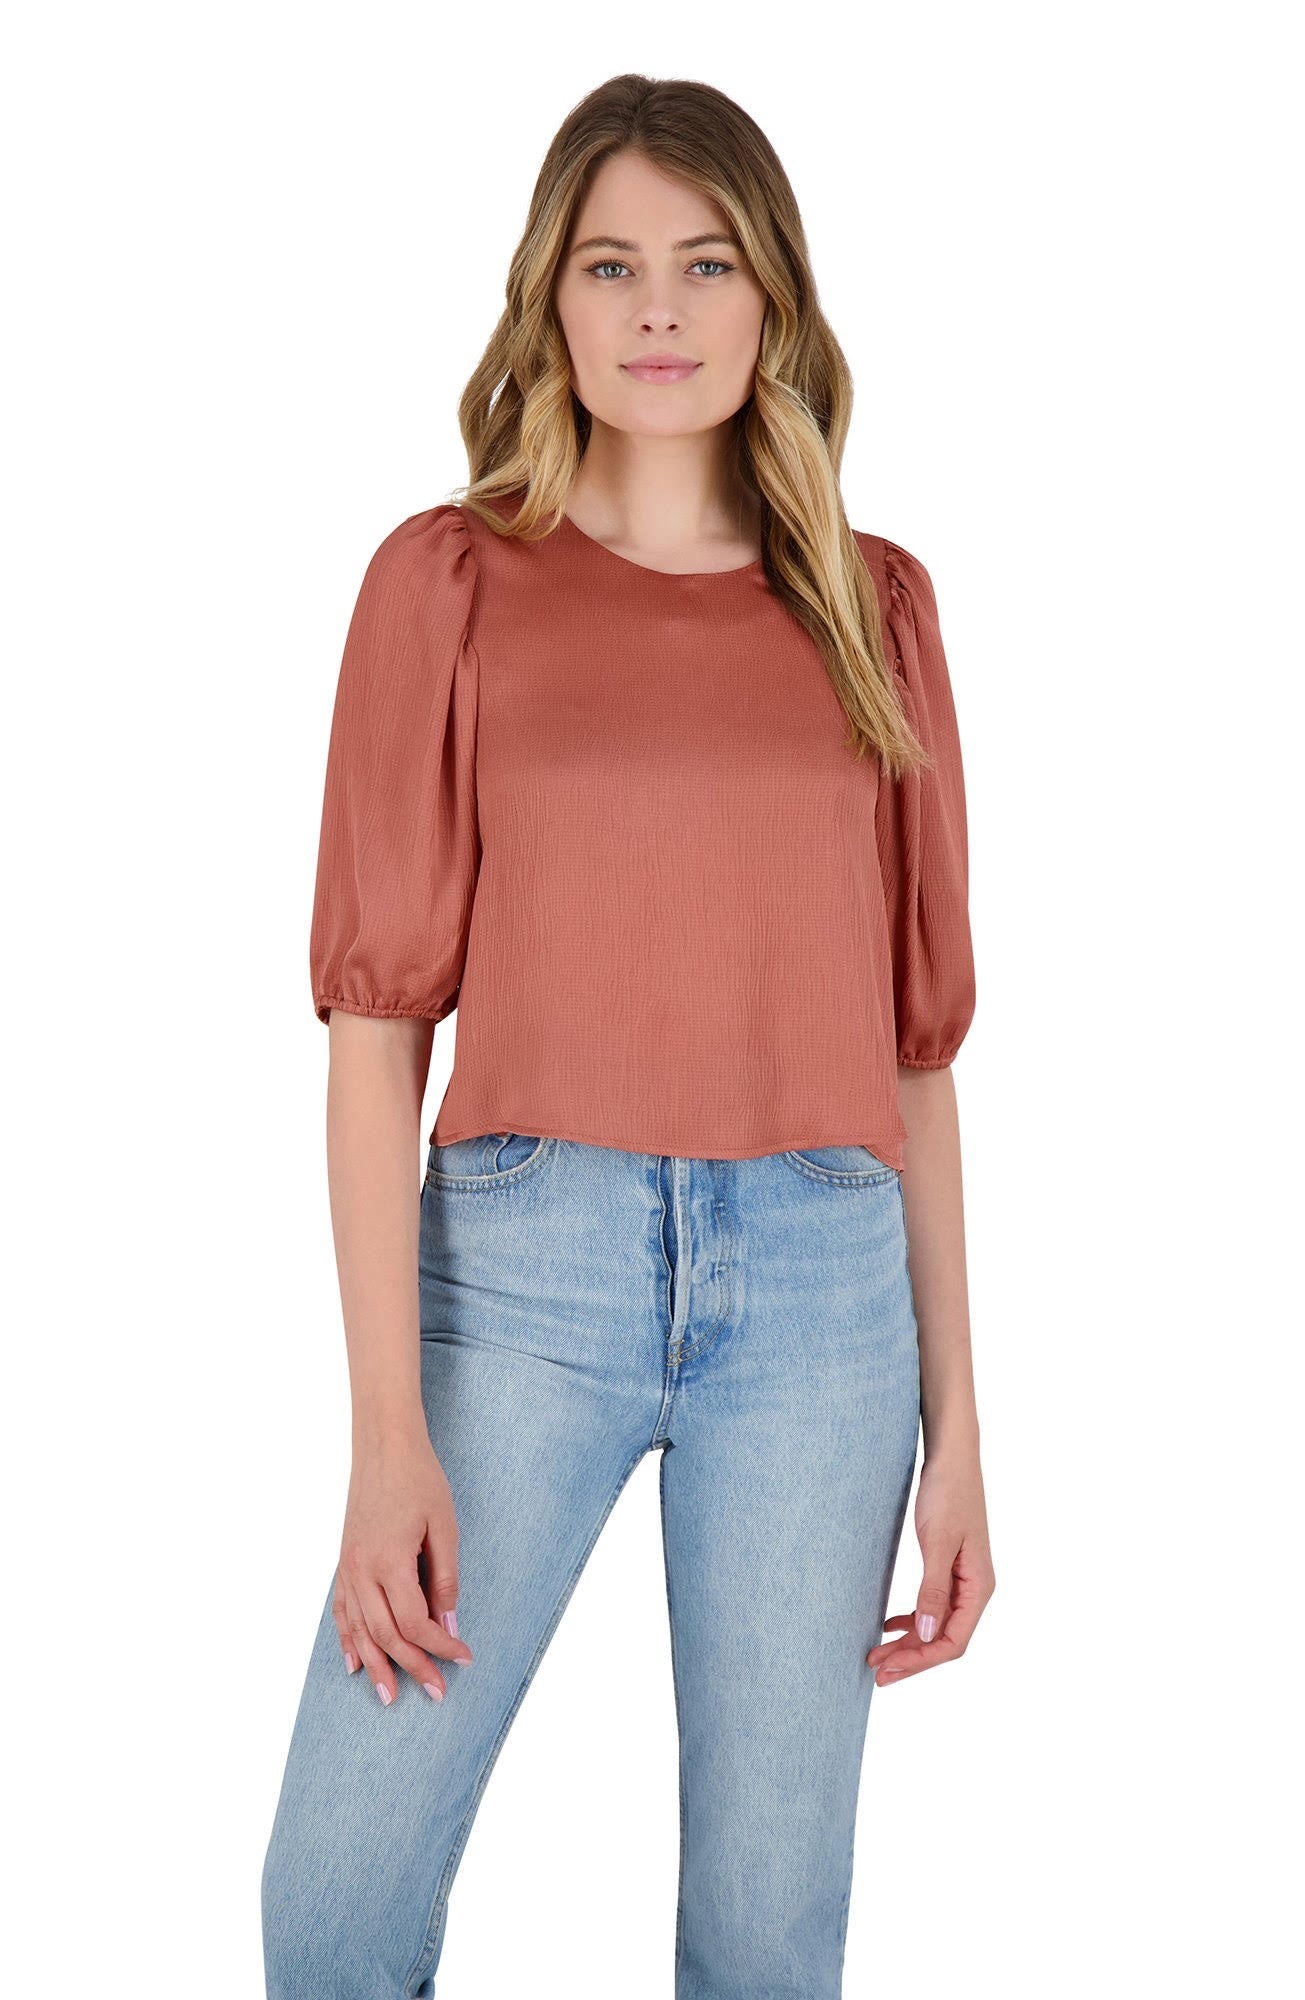 BB DAKOTA SLEEVE ME IN CHARGE TOP BK304118